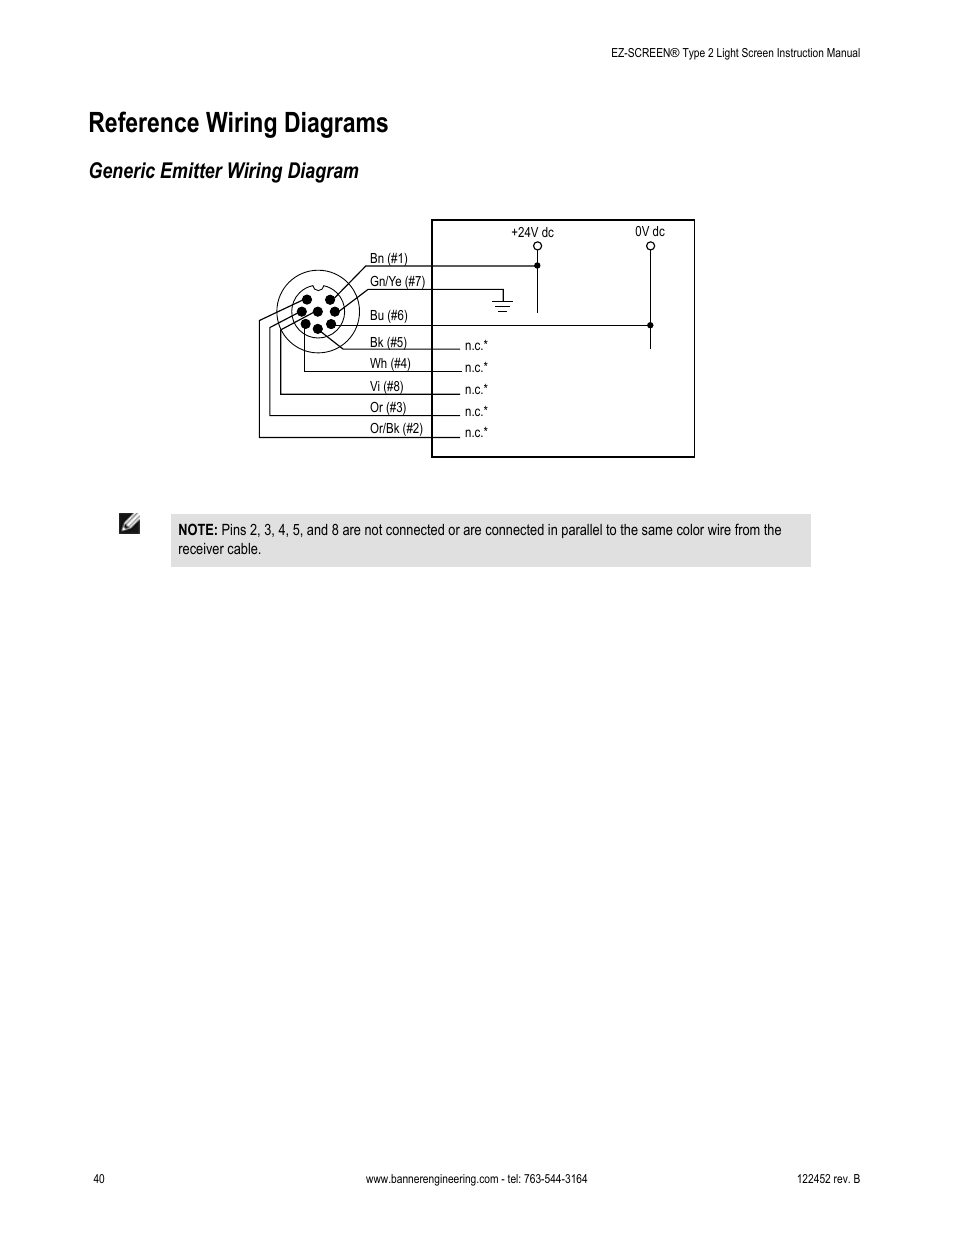 Reference wiring diagrams, Generic emitter wiring diagram | Banner  EZ-SCREEN Safety Light Curtain Systems User Manual | Page 40 / 71